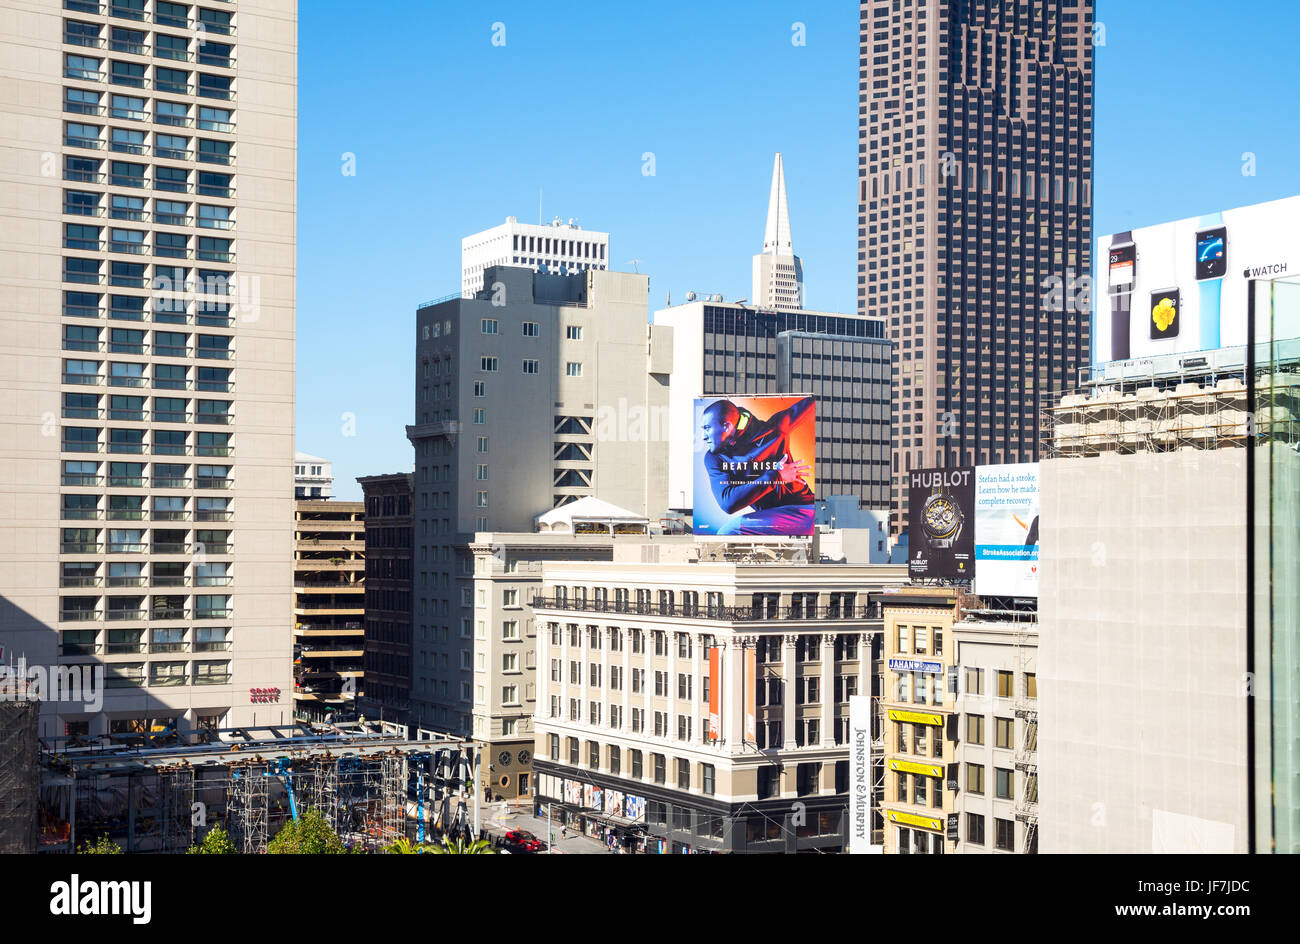 San Francisco, USA, The architectures and billboards of Union Square - Stock Image